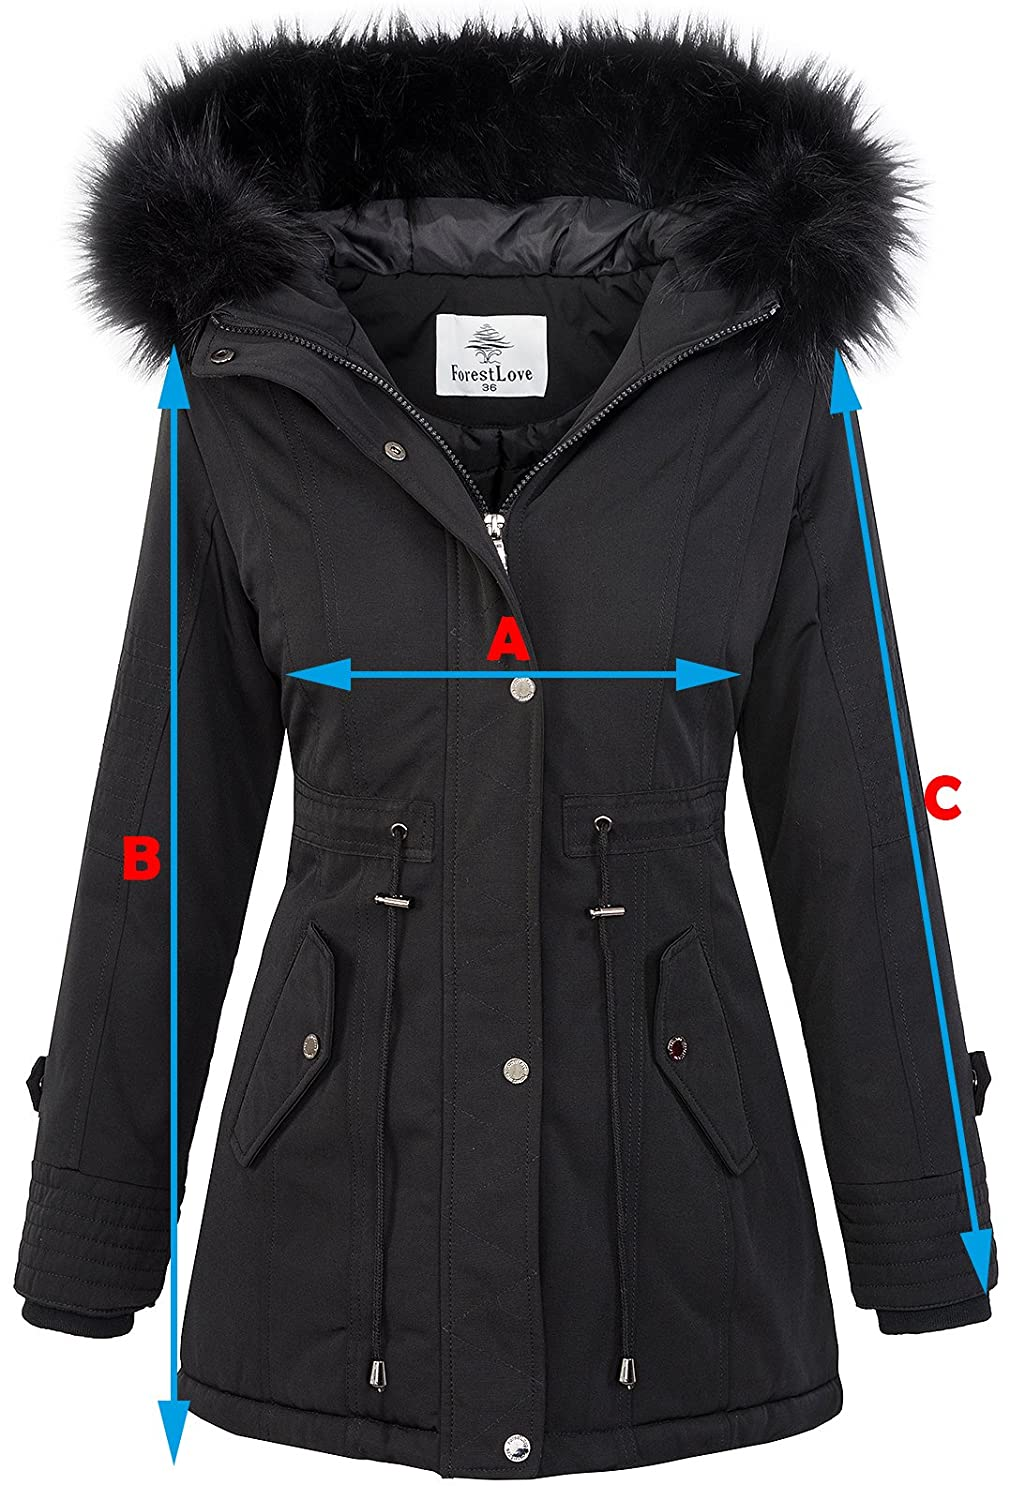 Rock Creek Designer Ladies Jacket Parka Coat Winter Jacket Short Coat D-345